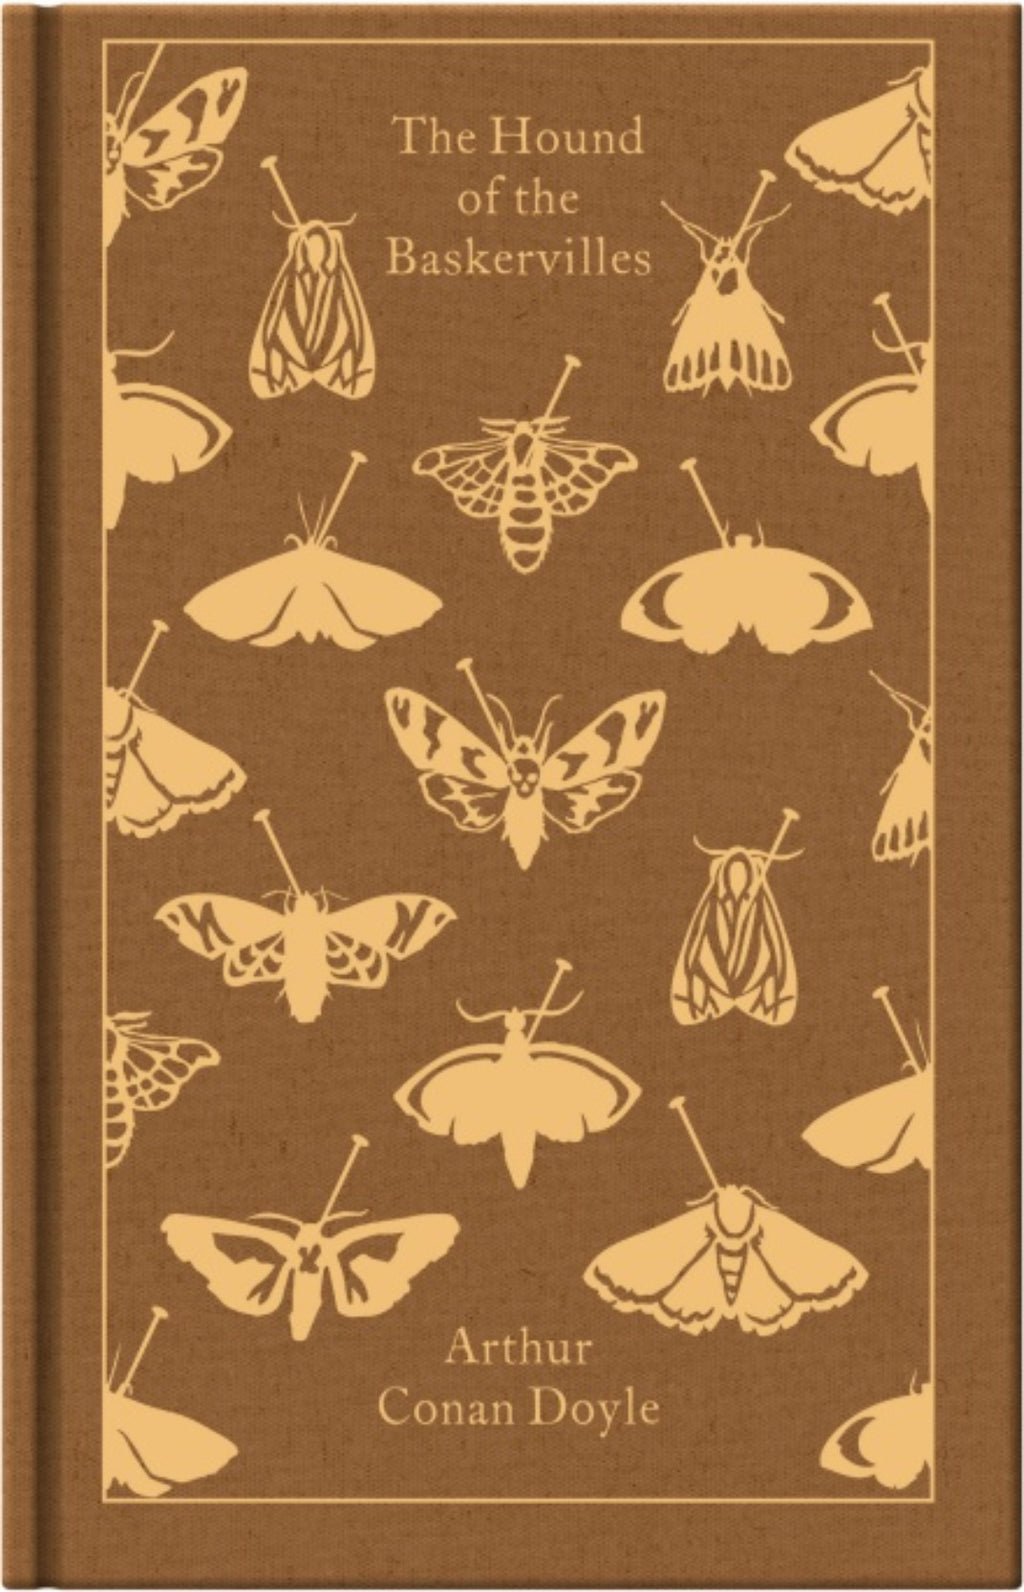 The Hound of the Baskervilles - Penguin Clothbound Classics